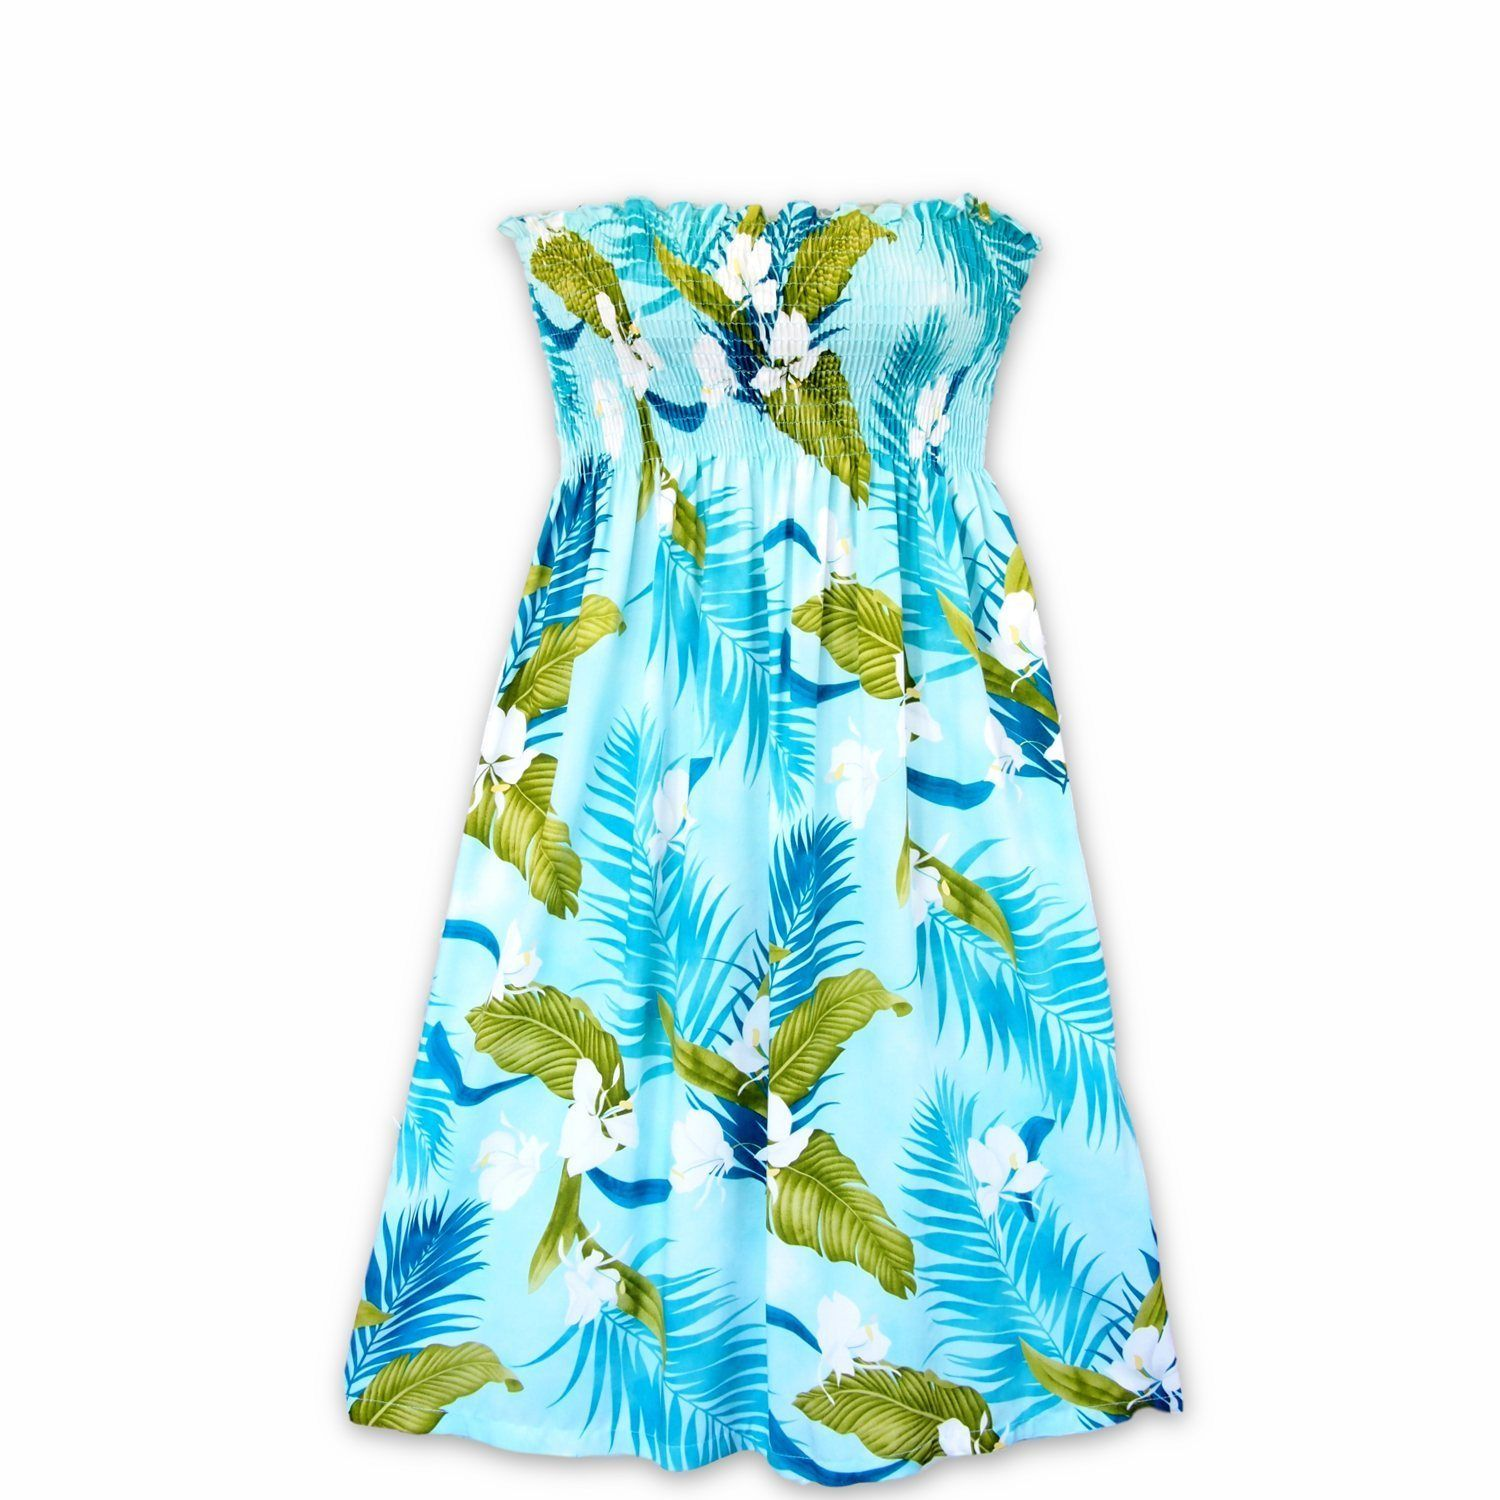 45c0f60237c Always designed in Hawaii at Lavahut! Ginger Breeze Aqua Moonkiss Hawaiian  Dress  madeinhawaii  hawaiianclothing  floraldresses  alohadress  lavahut  ...